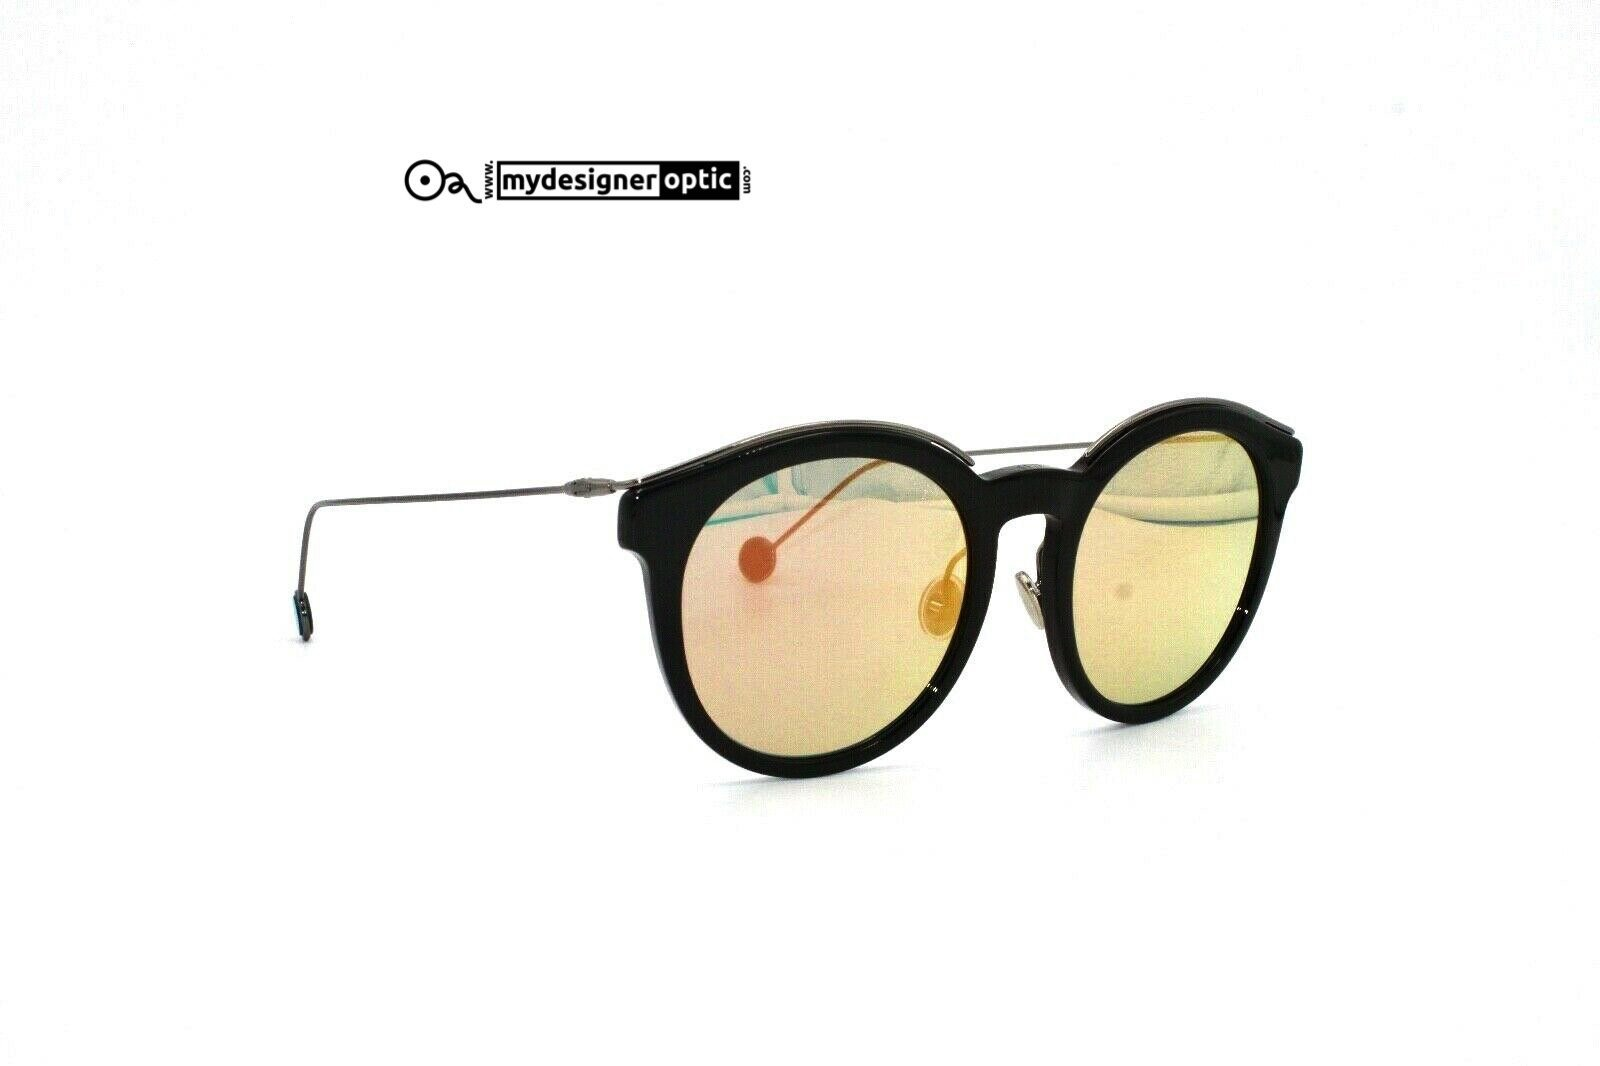 Christian Dior Sunglasses Blossom ANS0J 52-20 145 Made in Italy - Mydesigneroptic